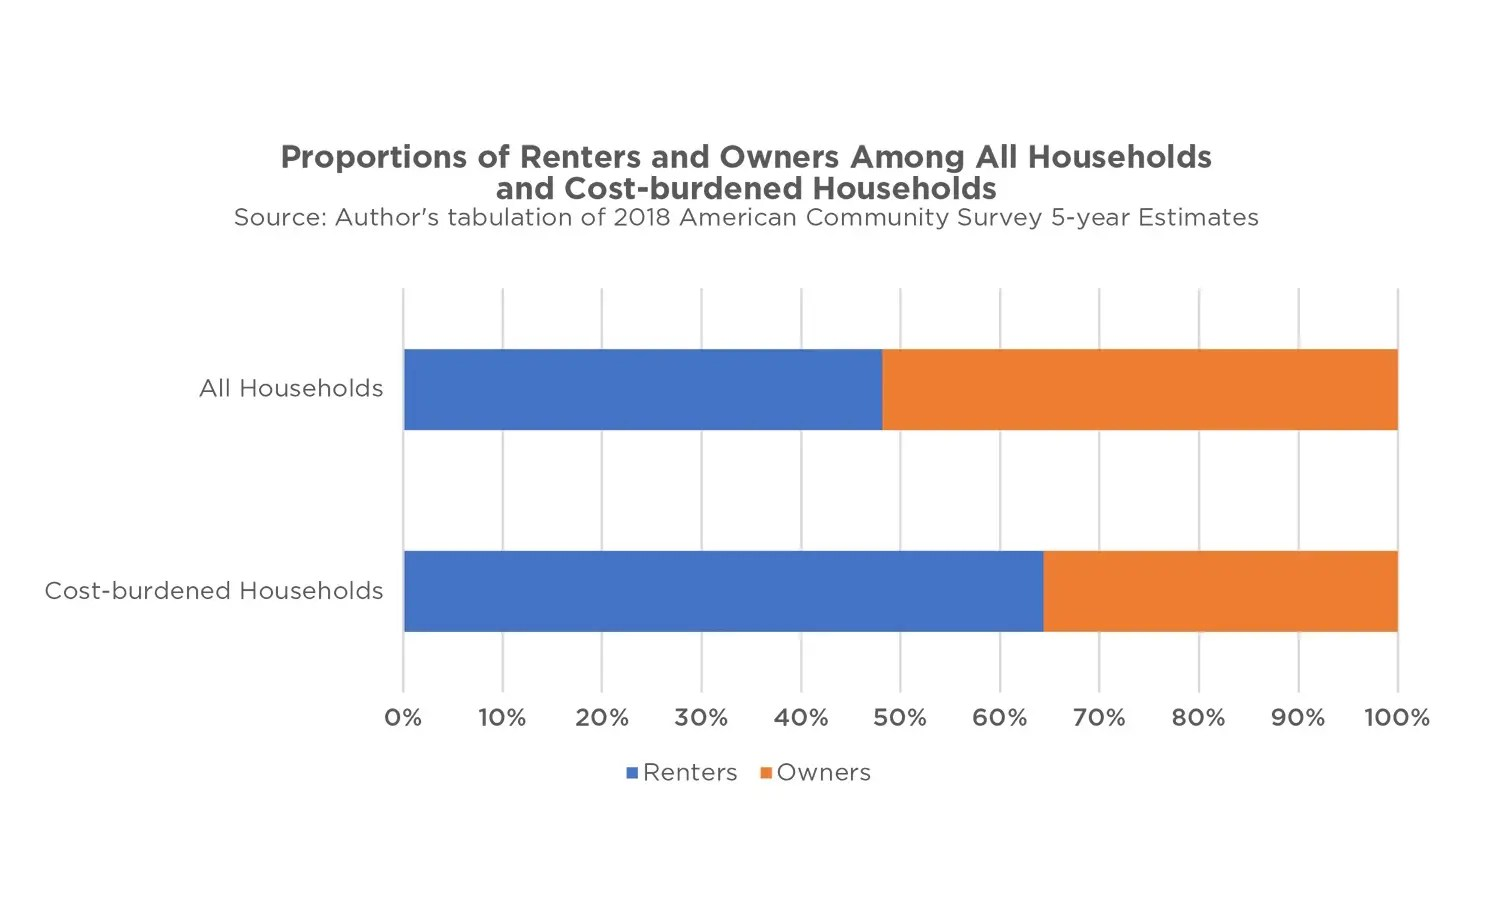 Graph showing Proportions of Renters and Owners Among All Households and Cost-burdened Households